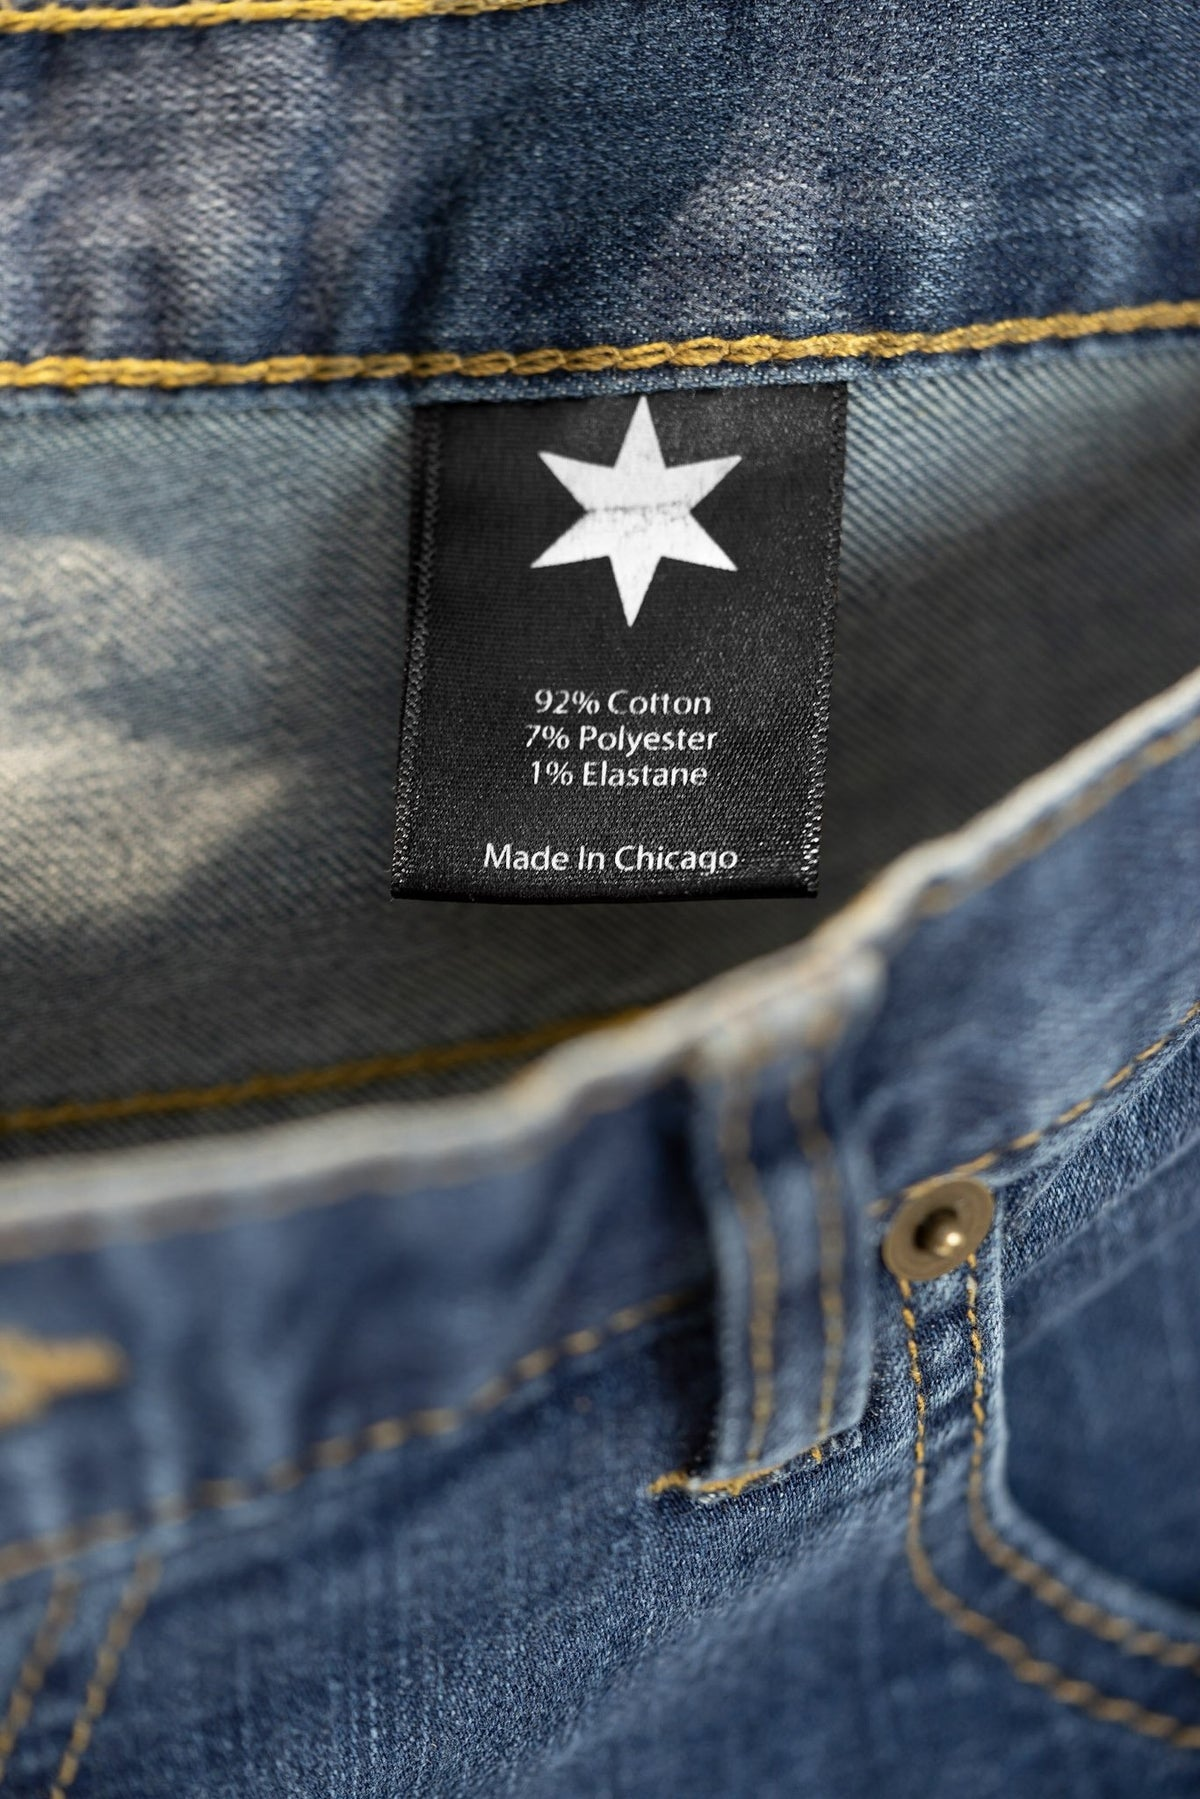 More images: 100% cotton denim tag